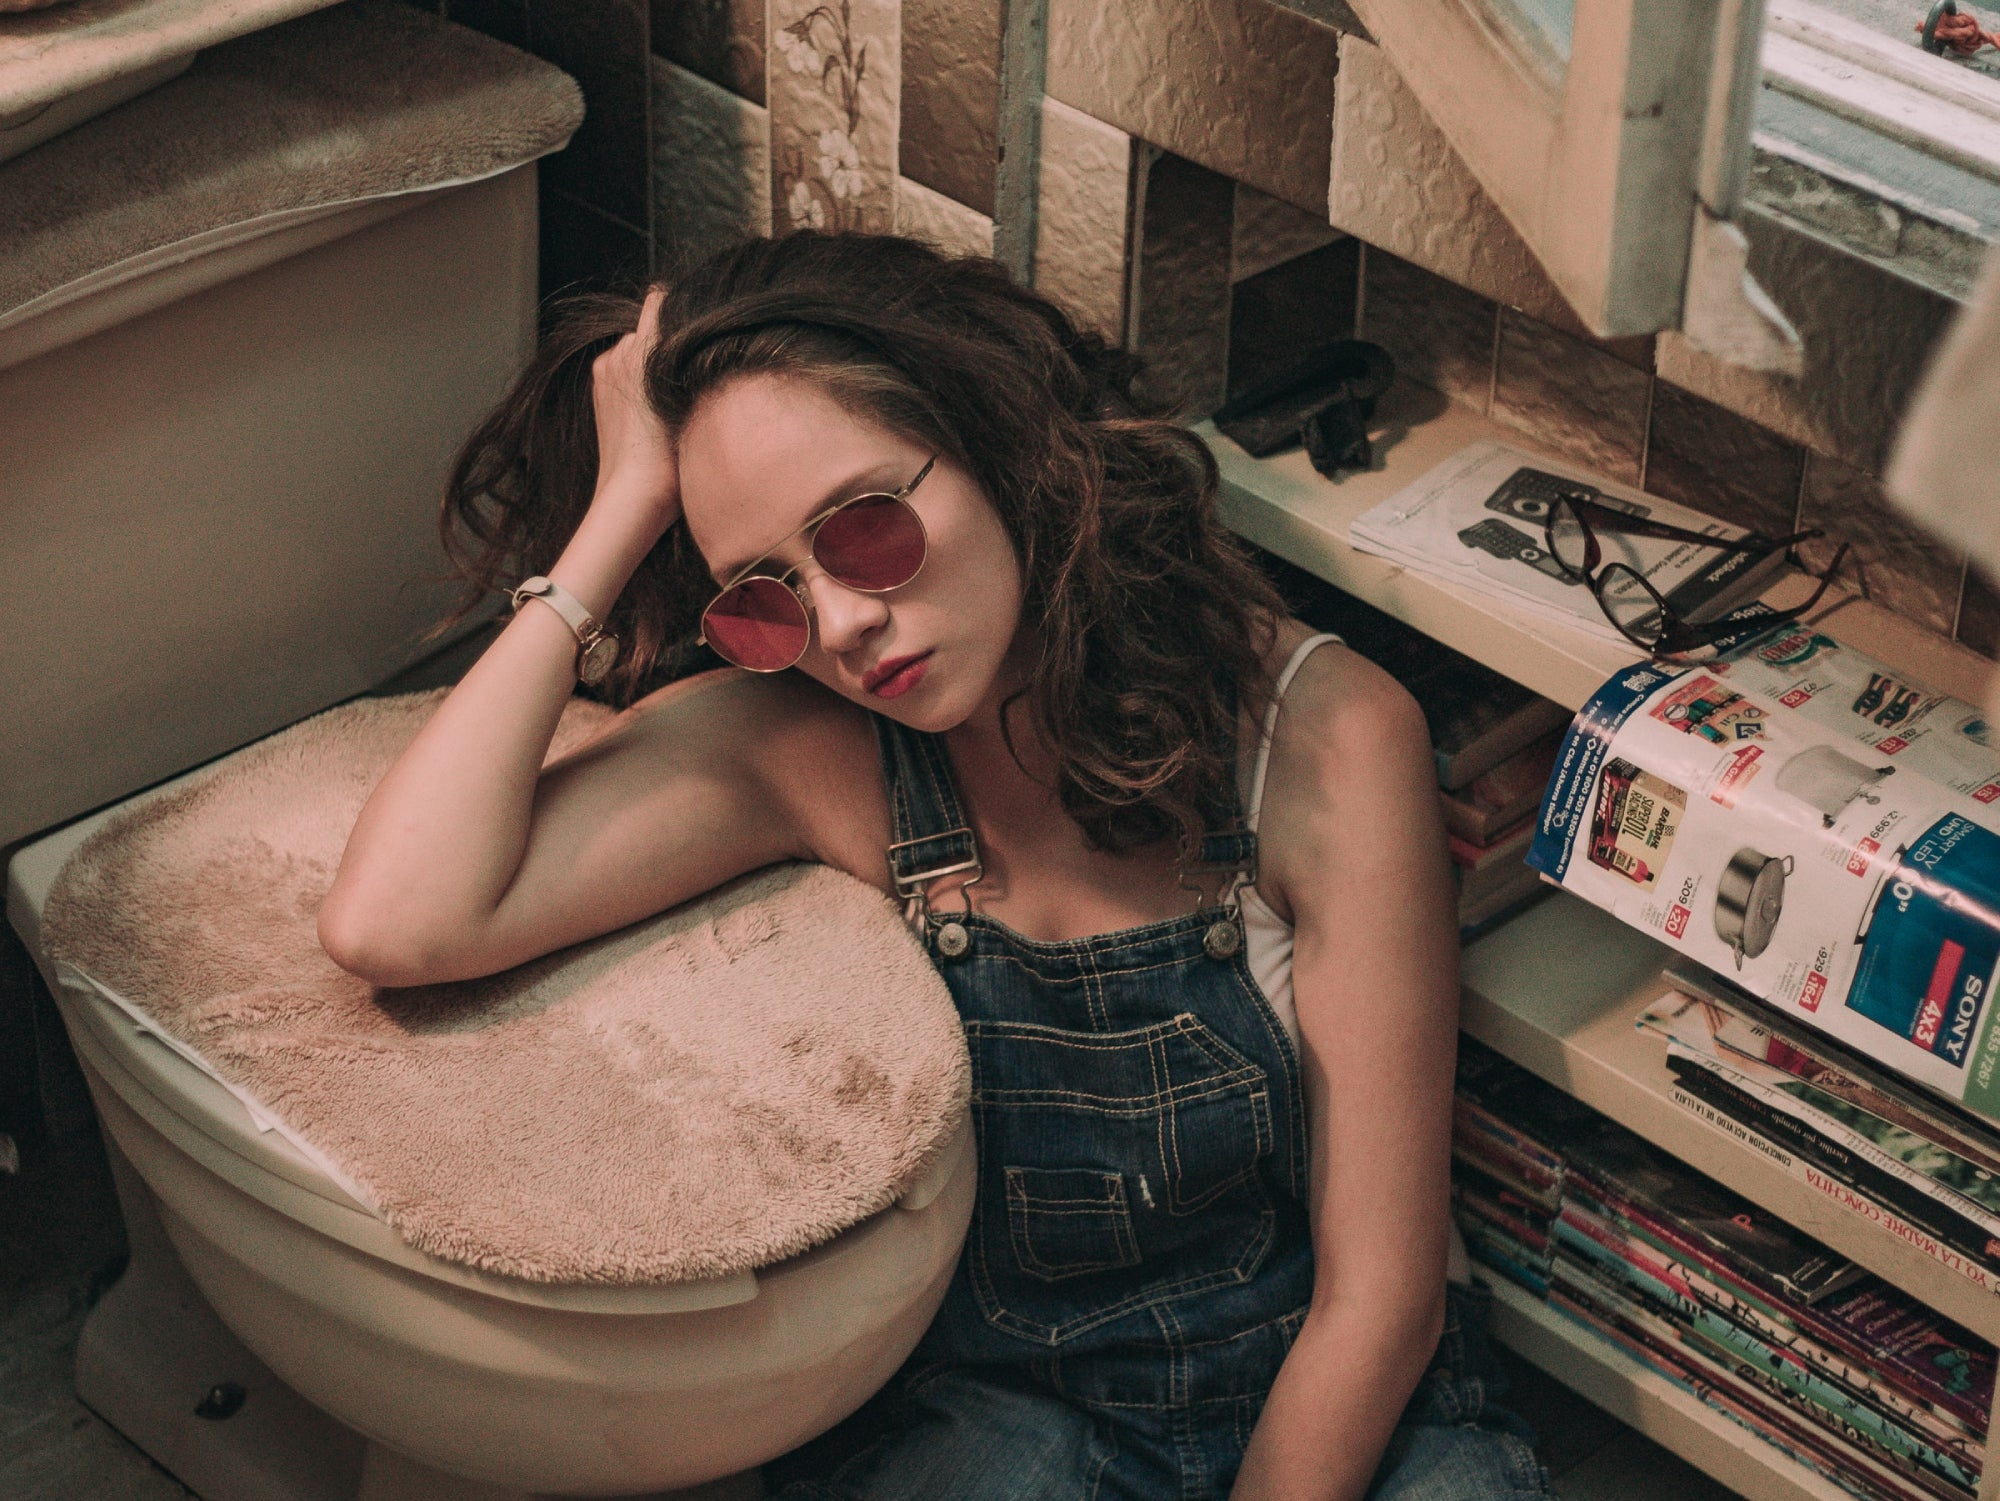 A frustrated woman sitting on the floor of a bathroom, resting her arm on the carpeted lid of a toilet.